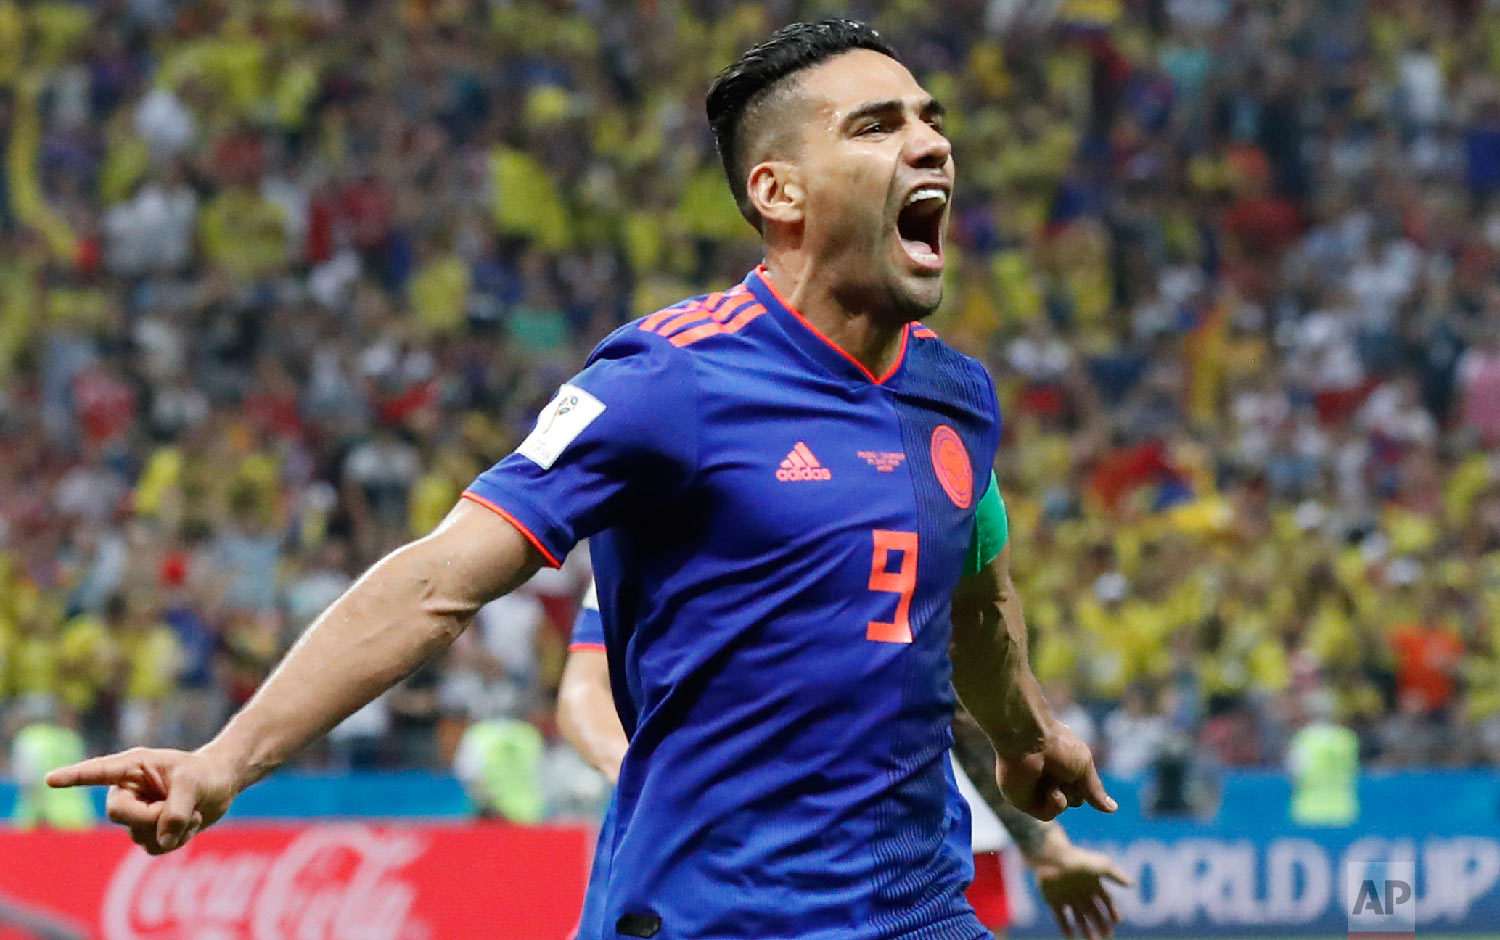 Colombia's Radamel Falcao celebrates after scoring the second side goal during the group H match between Poland and Colombia at the 2018 soccer World Cup at the Kazan Arena in Kazan, Russia, Sunday, June 24, 2018. (AP Photo/Frank Augstein)